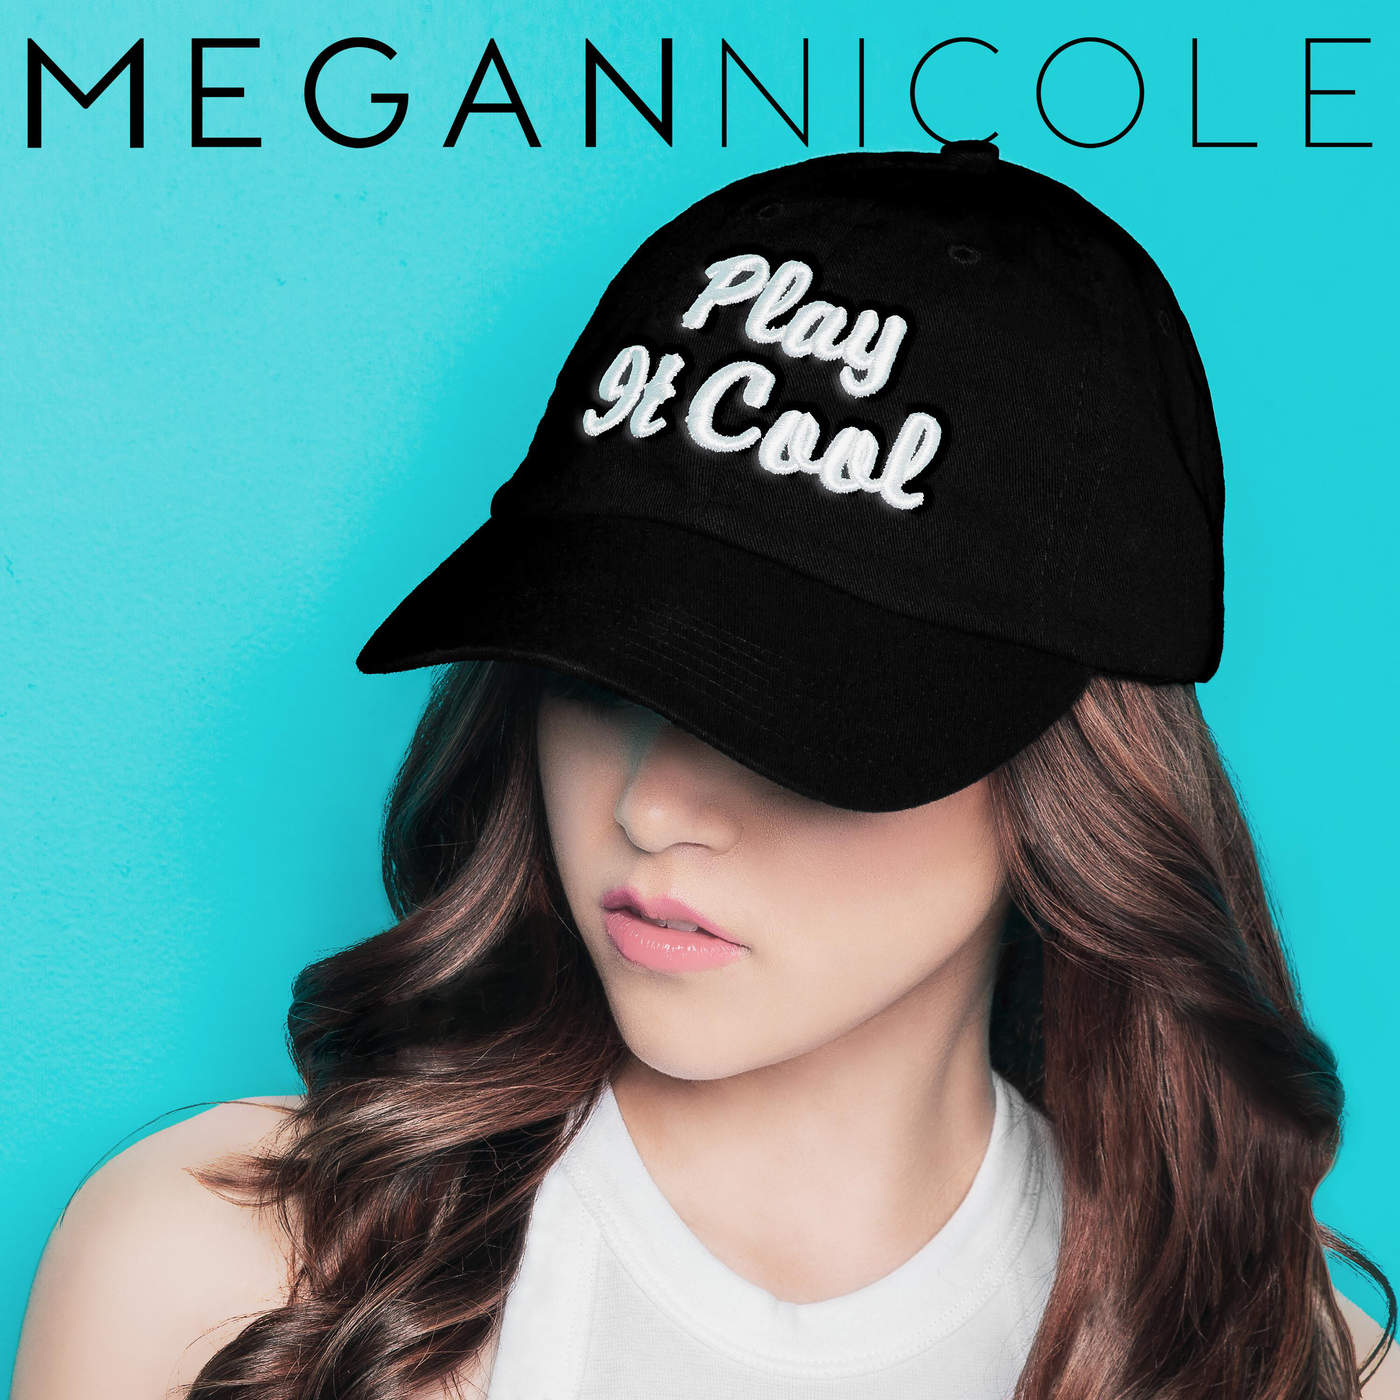 how to love megan nicole download